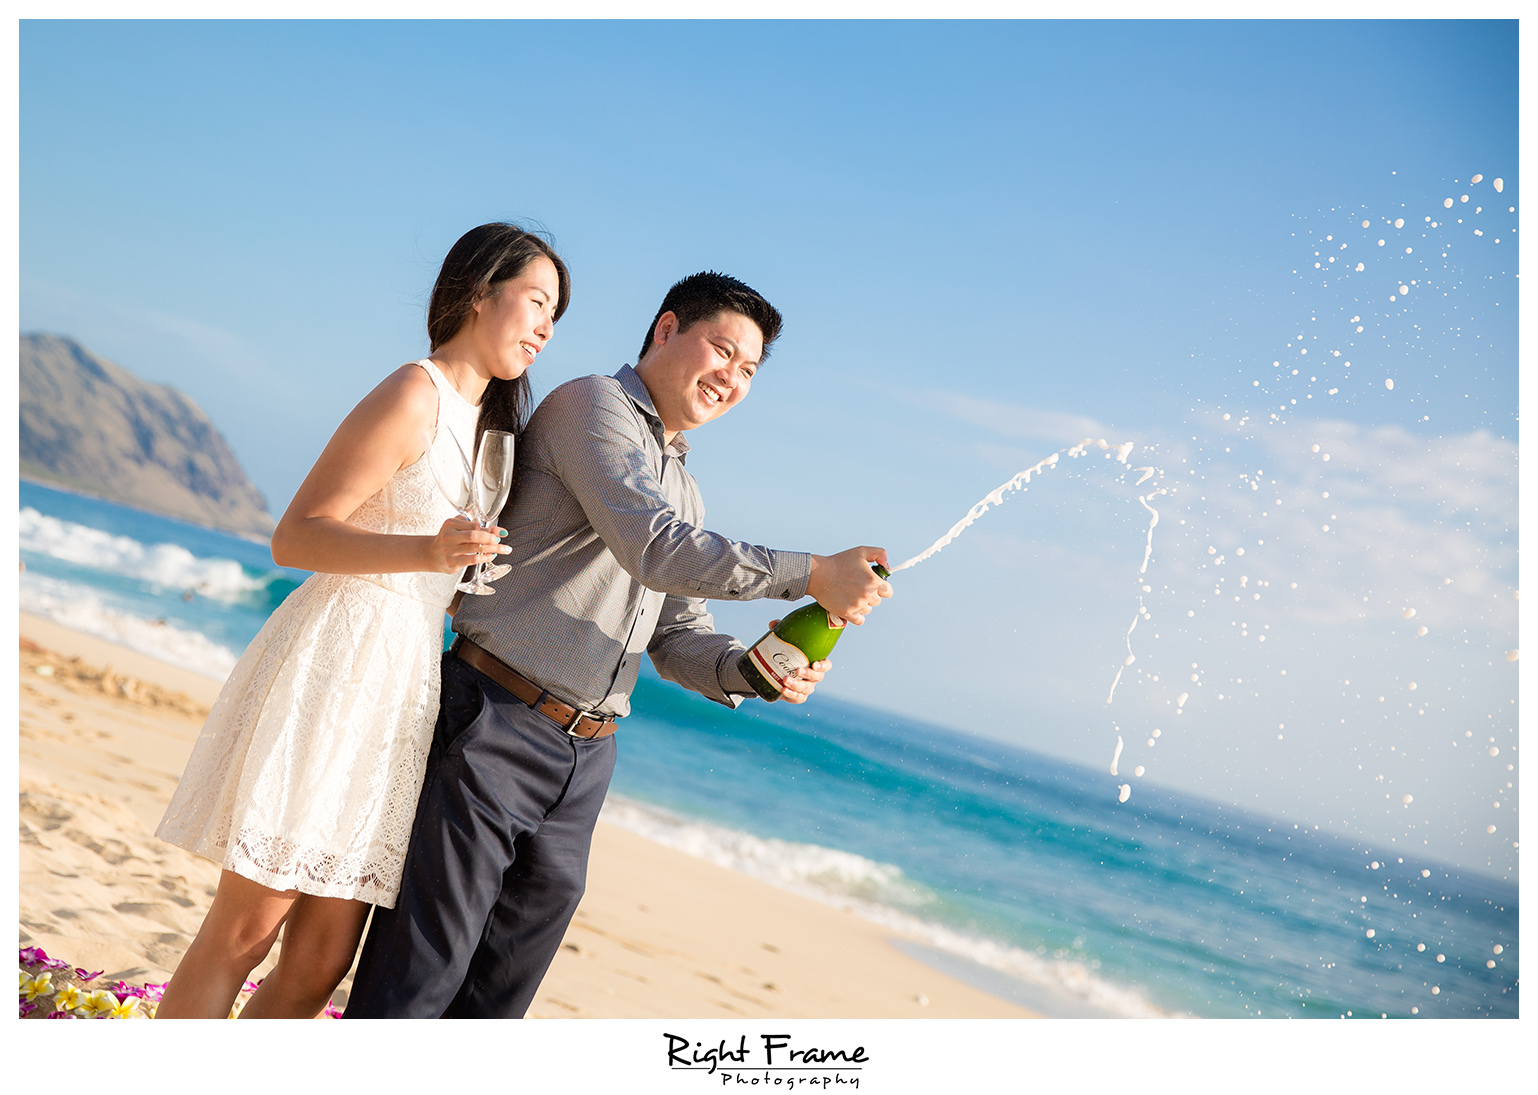 Romantic Surprise Hawaii Engagement Proposal